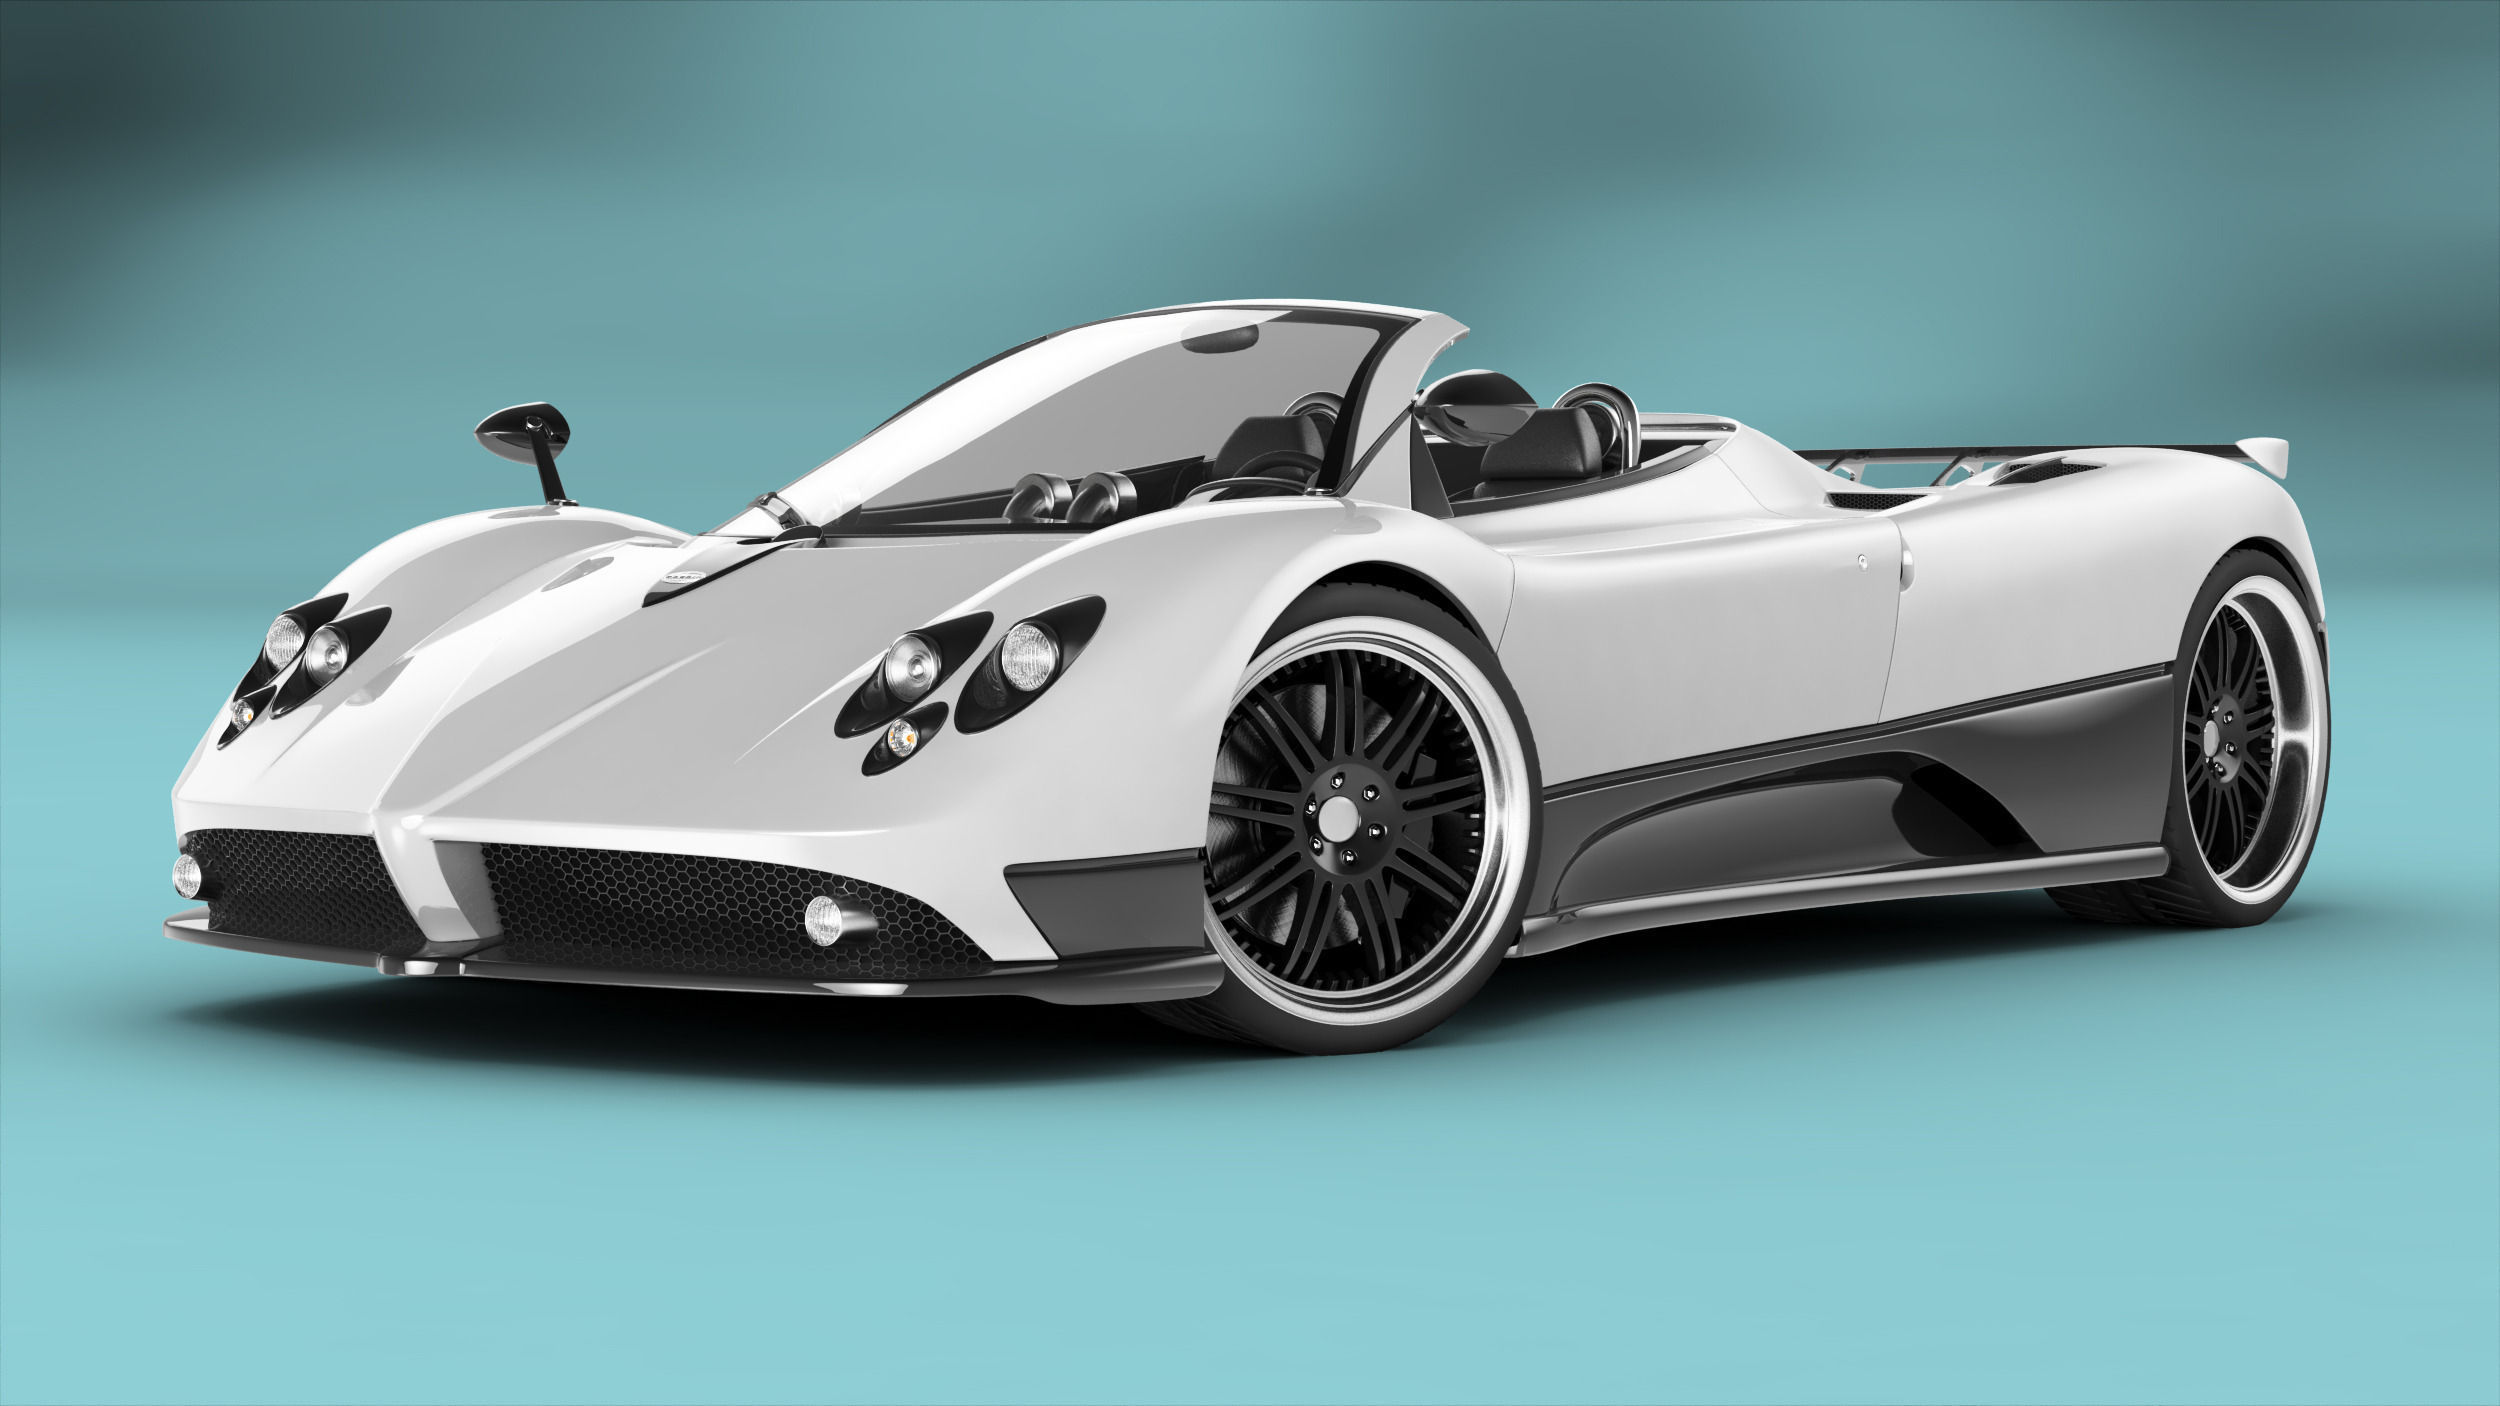 pagani zonda f roadster rigged 3d model animated rigged obj fbx ma mb mtl. Black Bedroom Furniture Sets. Home Design Ideas